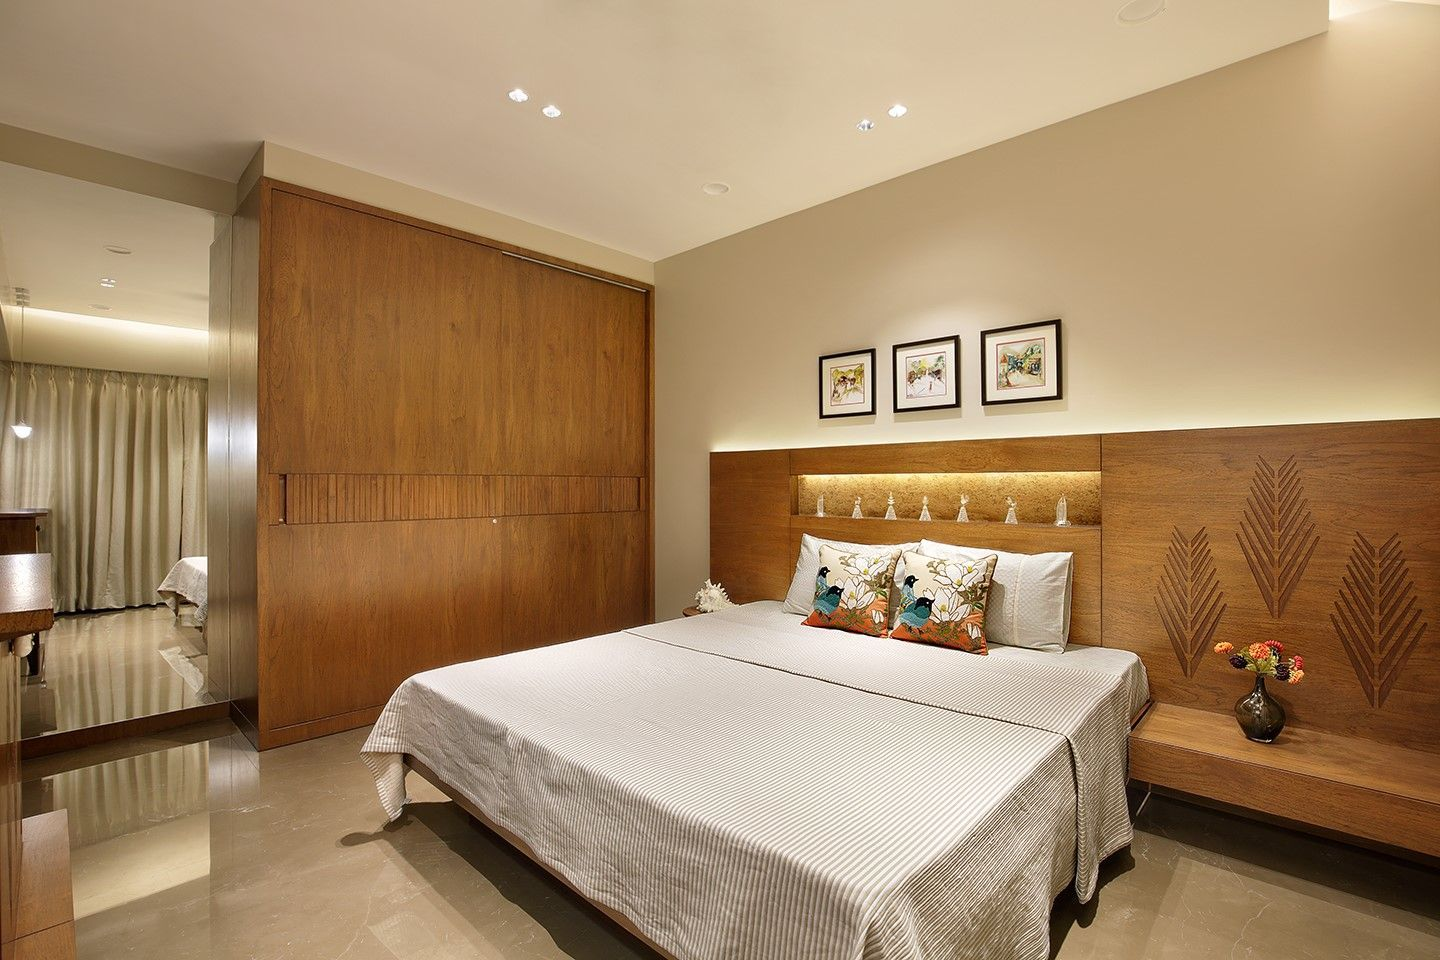 Wood art house bed room designed in teak wood with the customized